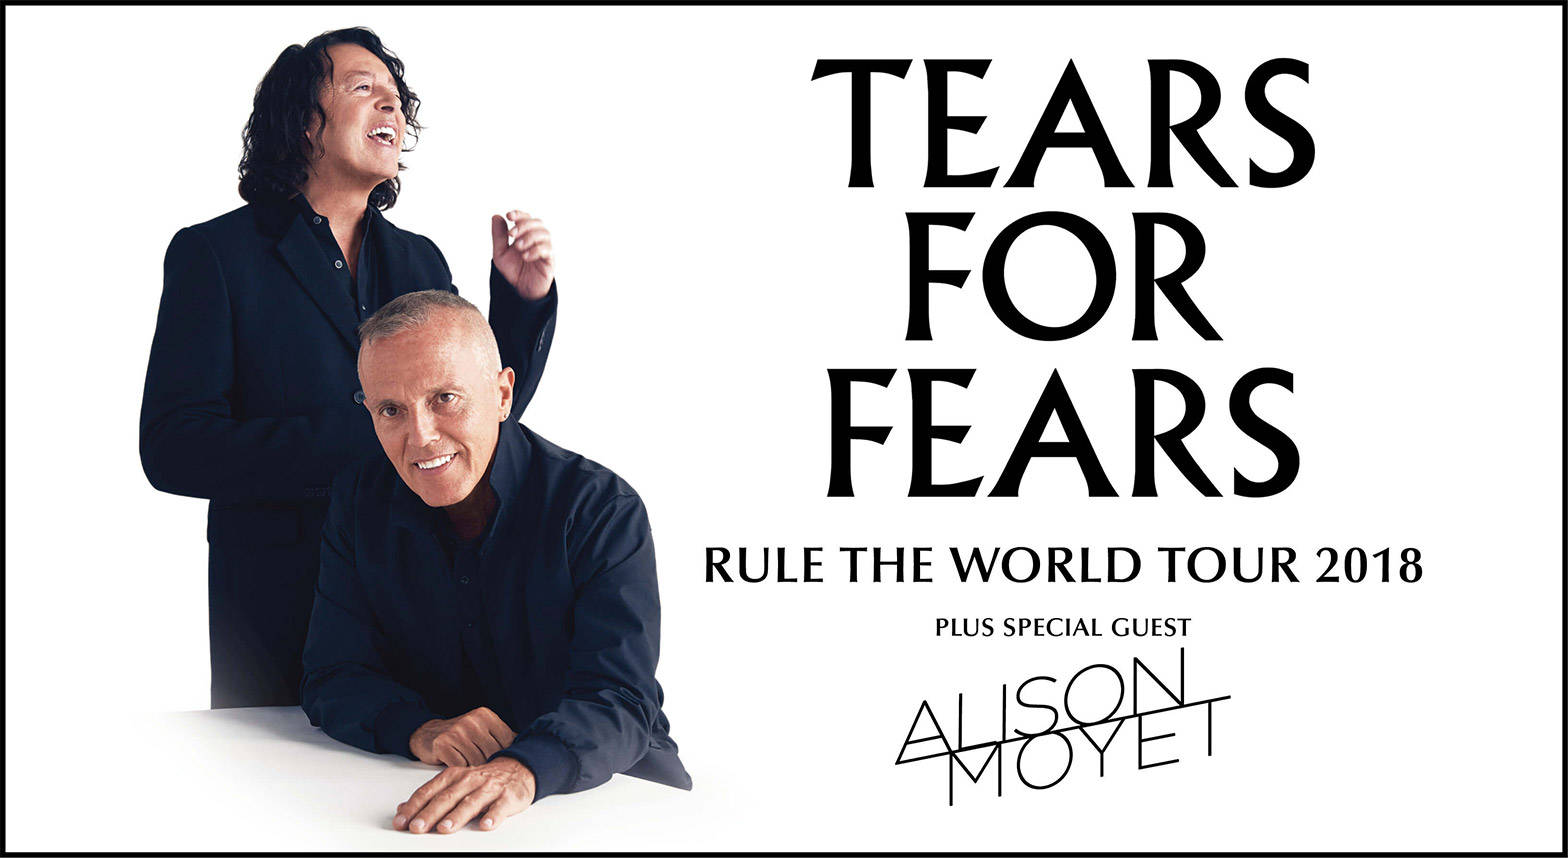 tears-for-fears-arenas.jpg